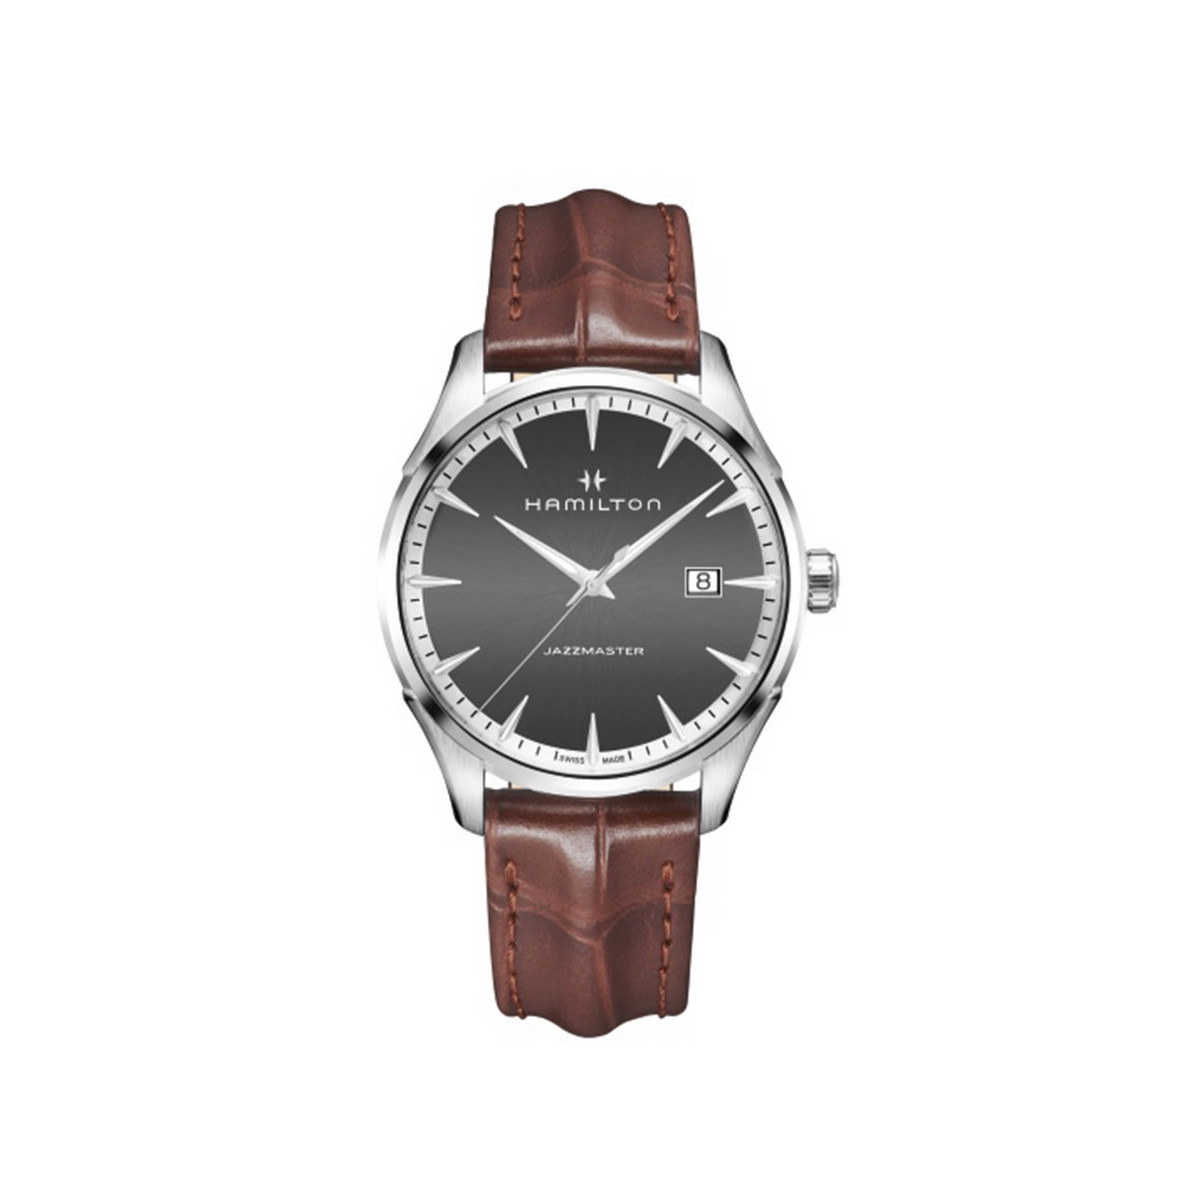 HAMILTON JAZZMASTER 40 MM WATCH